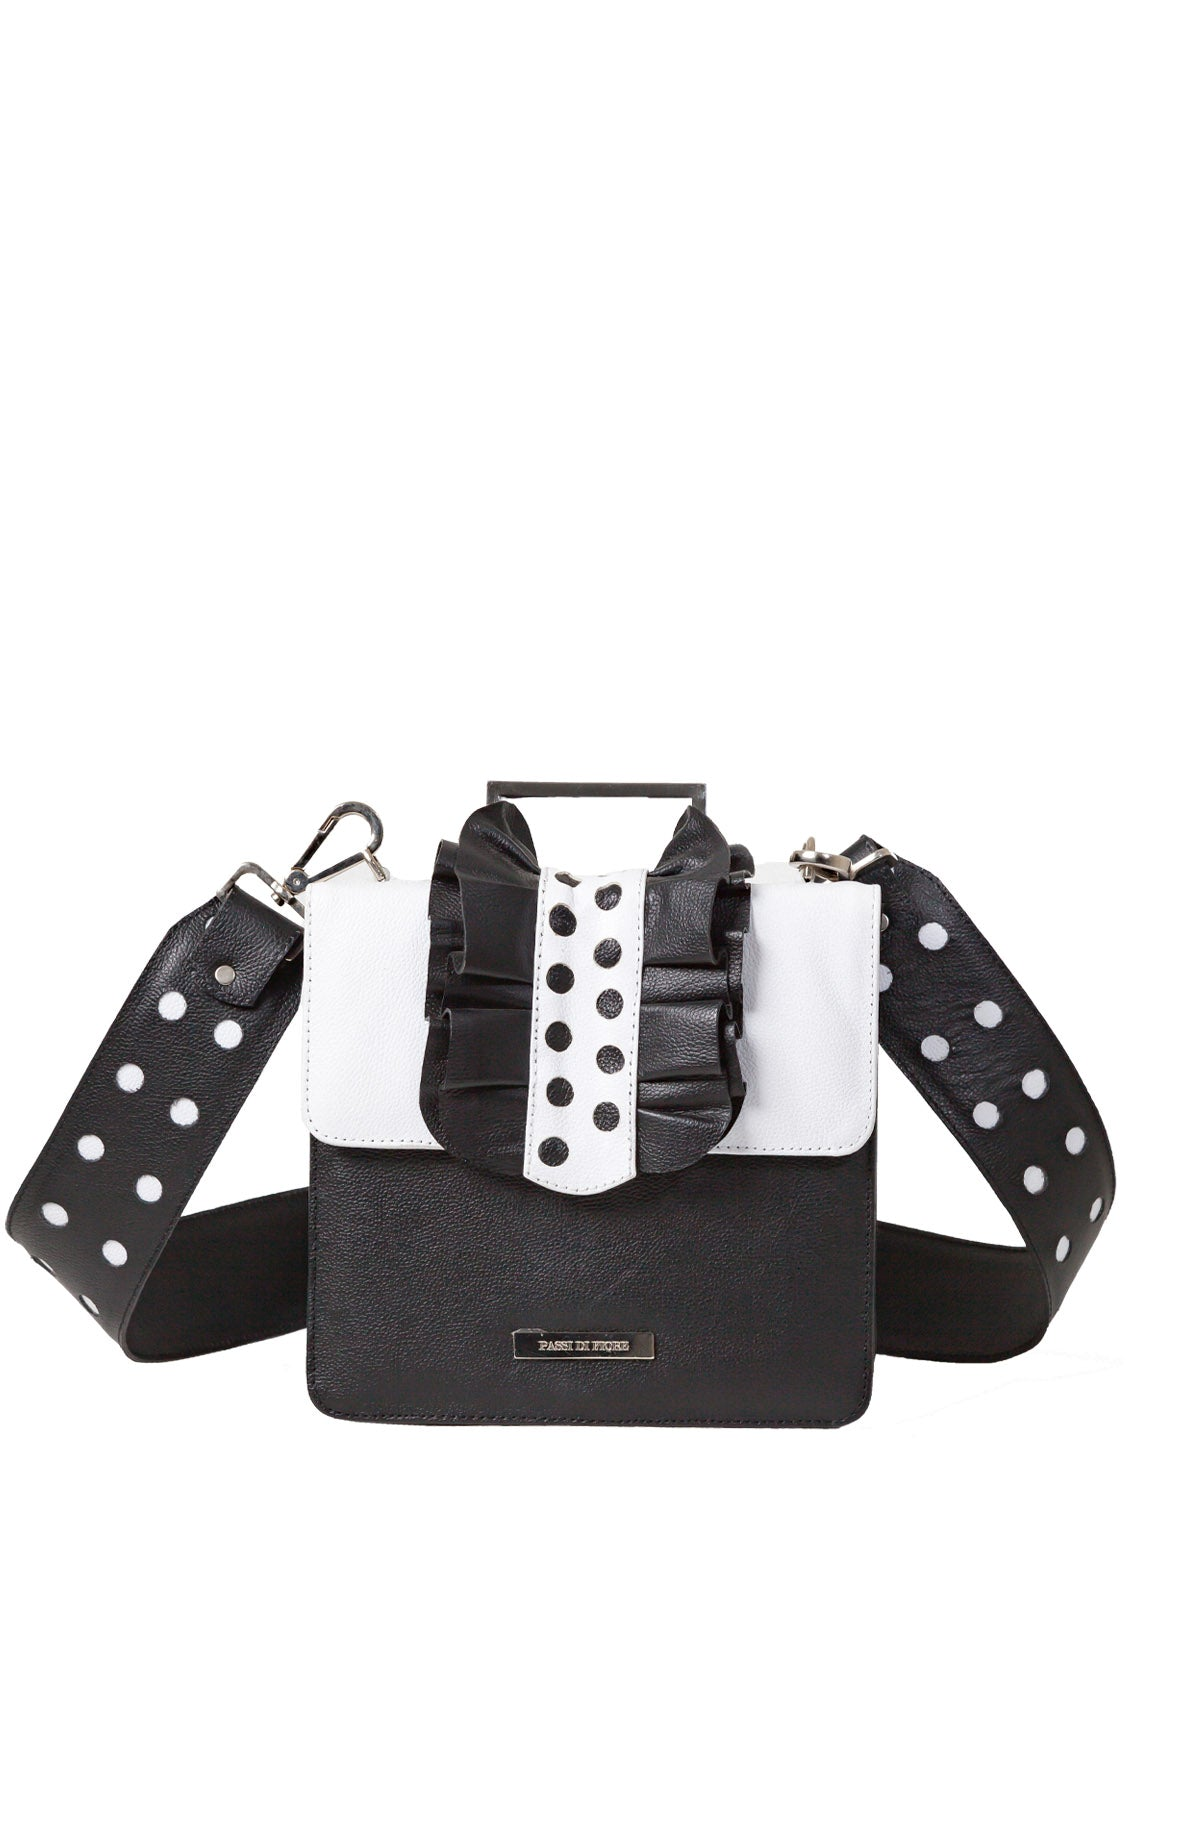 Andalusia Shoulder Bag Black and White